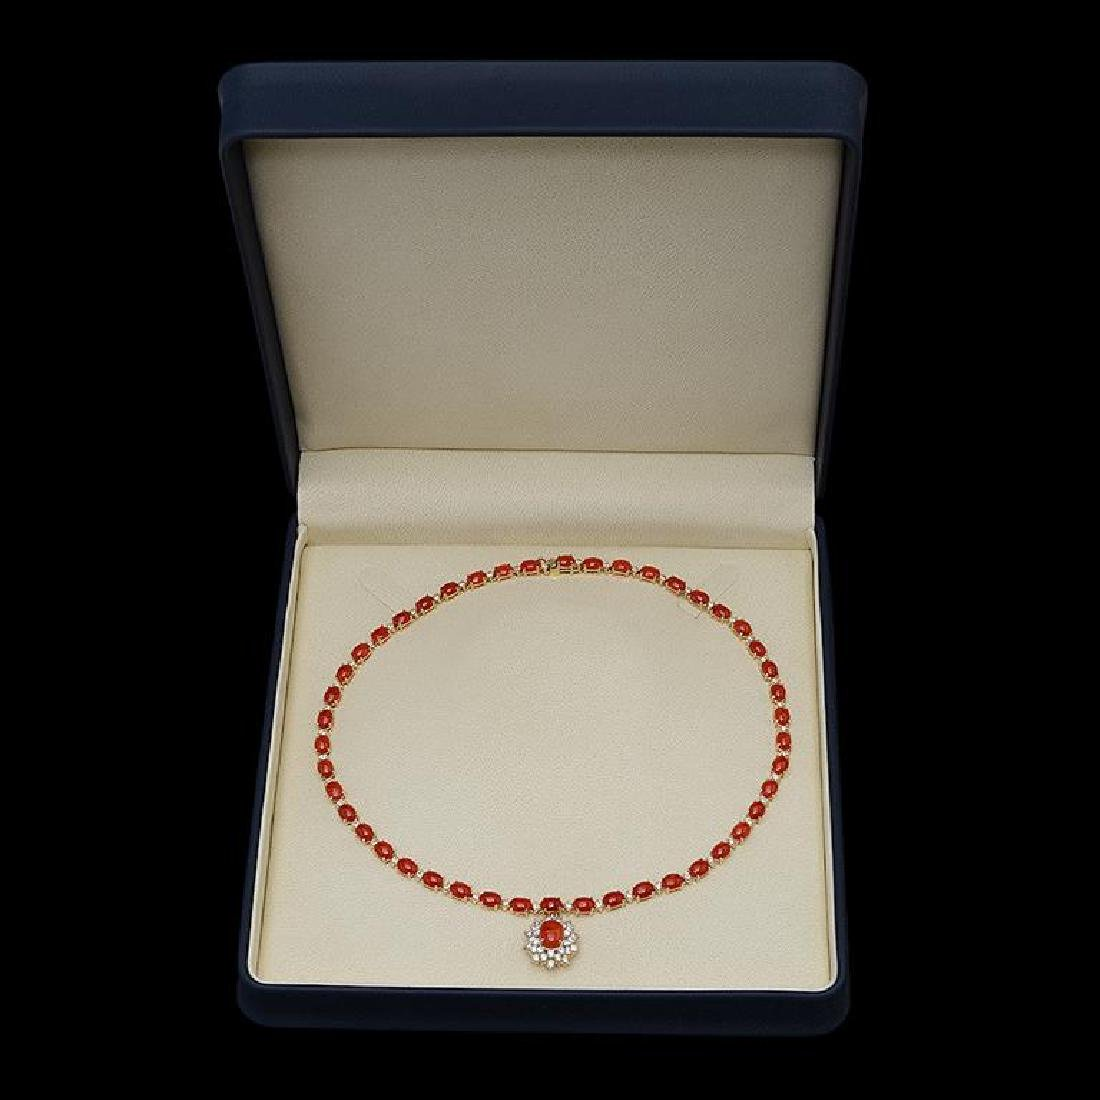 14K Gold 30.93ct Coral & 2.85ct Diamond Necklace - 3